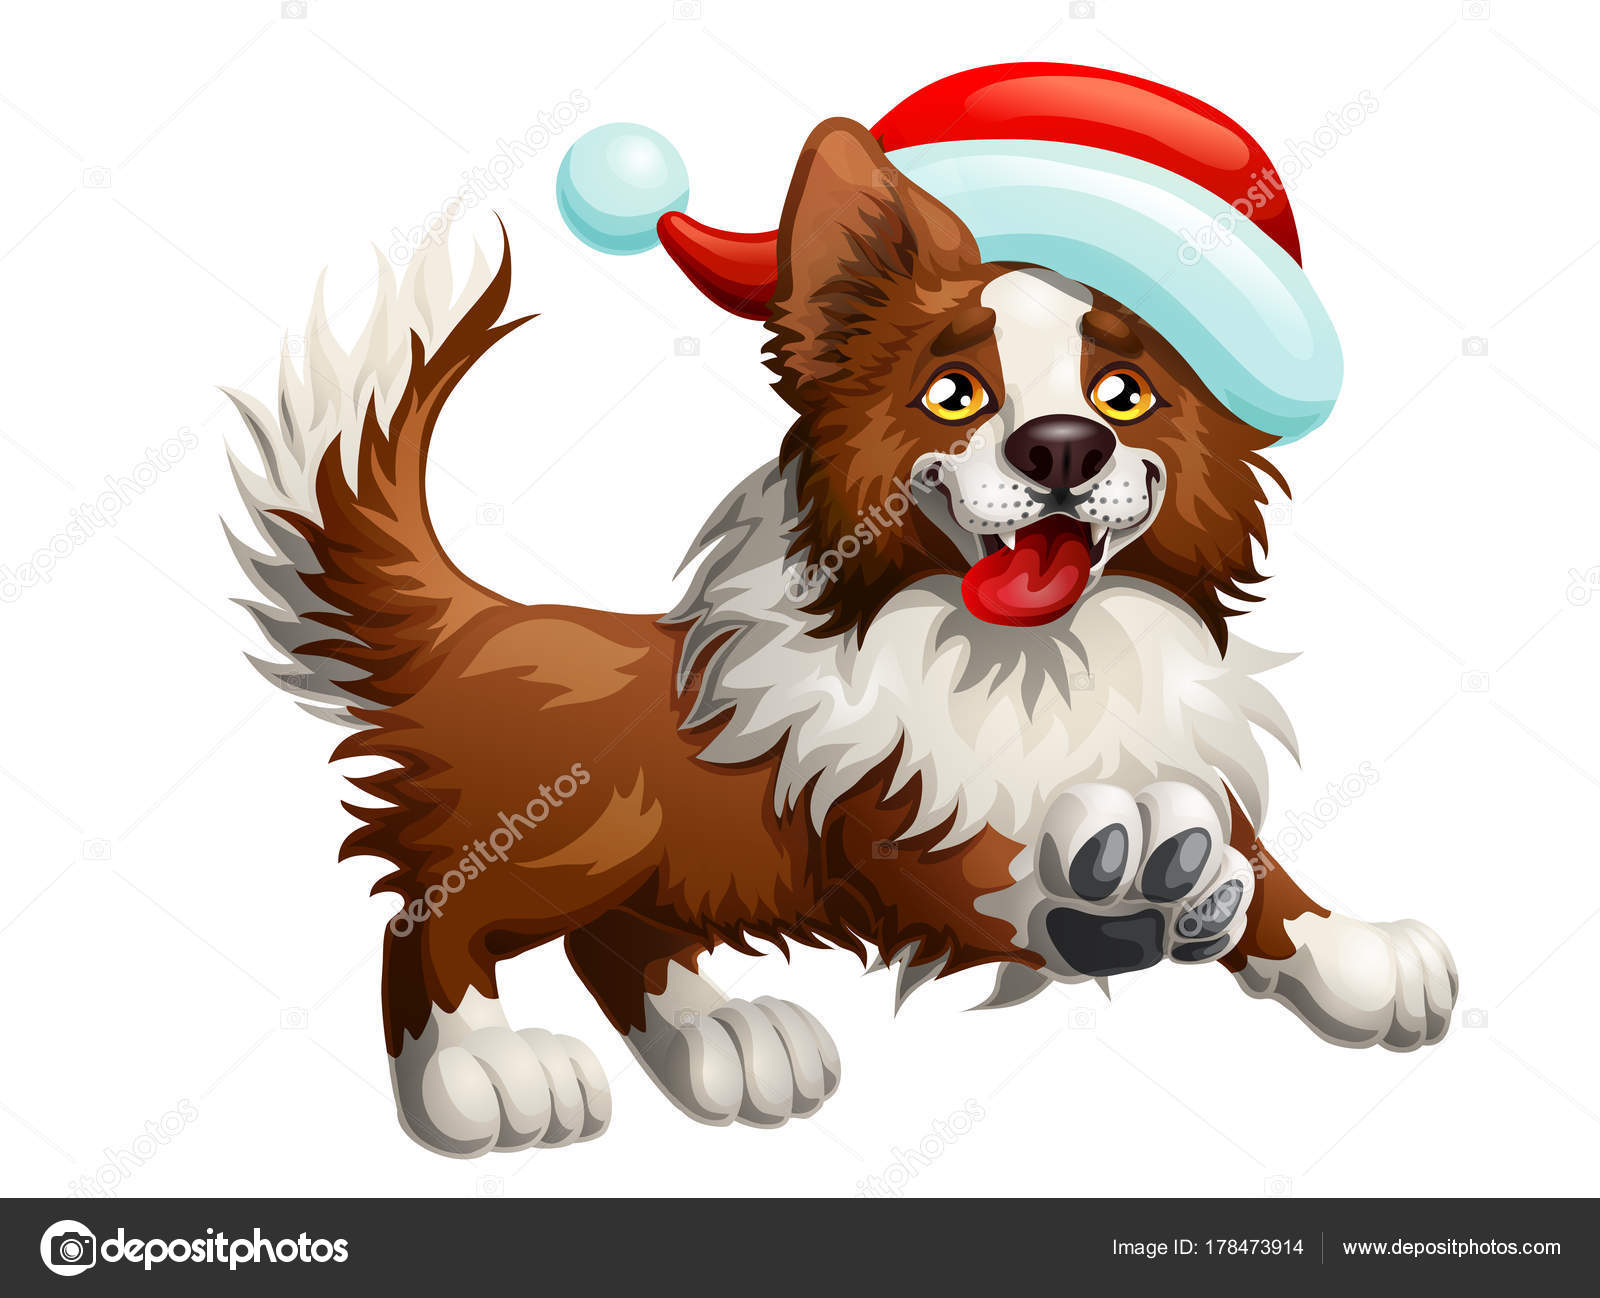 the cheerful brown puppy of a border collie and red cap a yellow dog a symbol 2018 new years according to the chinese calendar